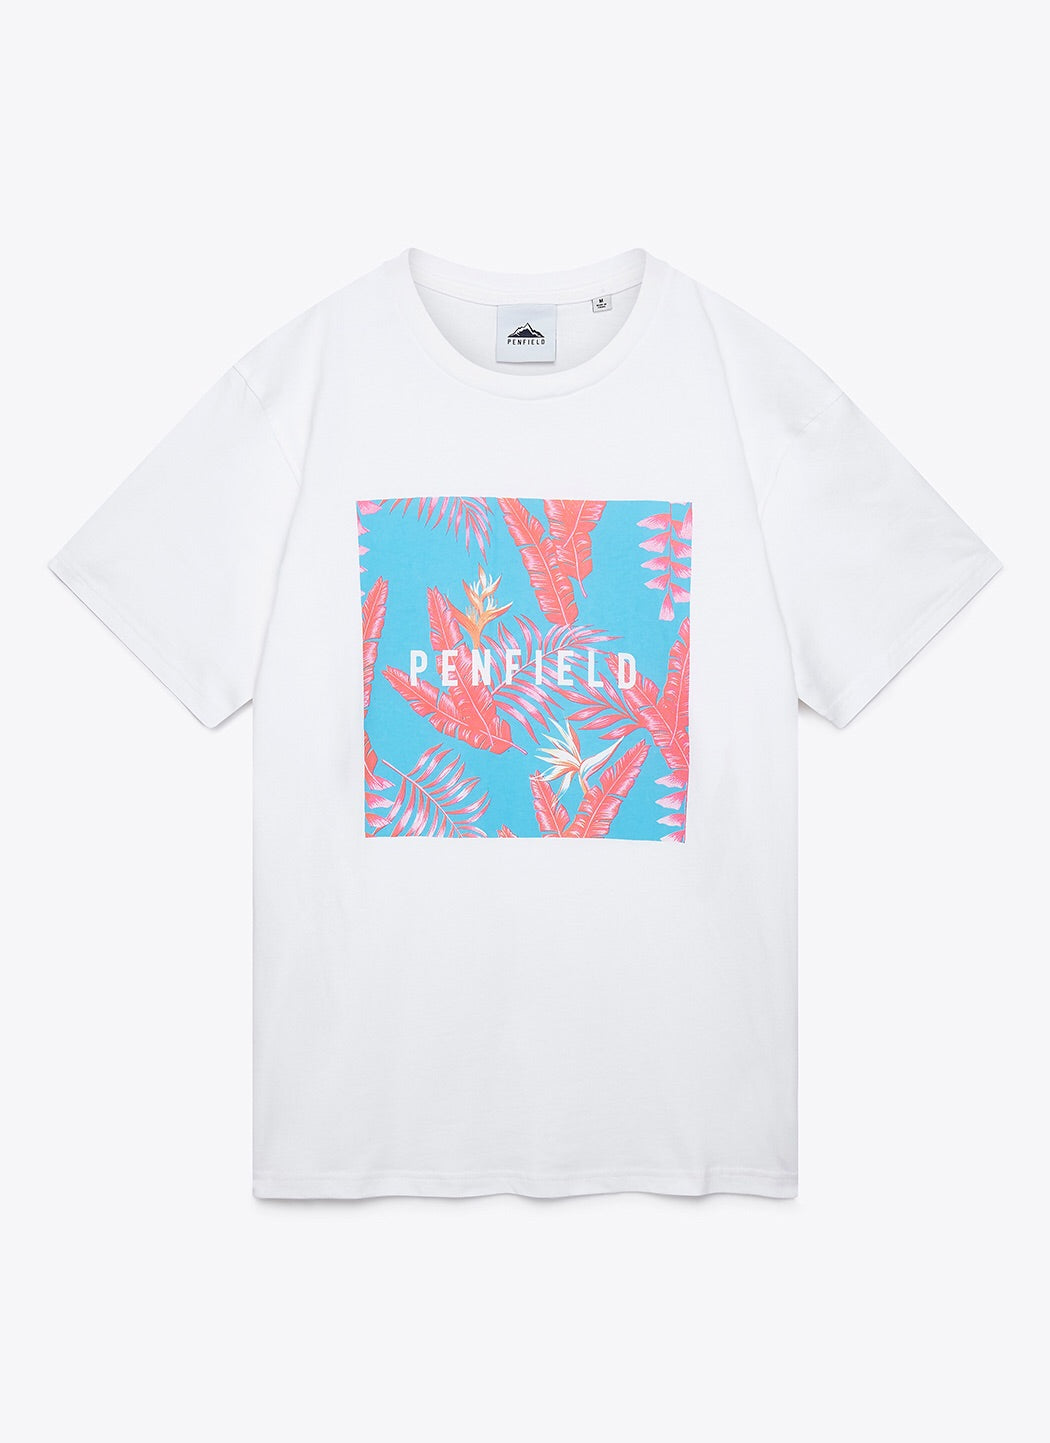 Penfield Brook T-shirt - White